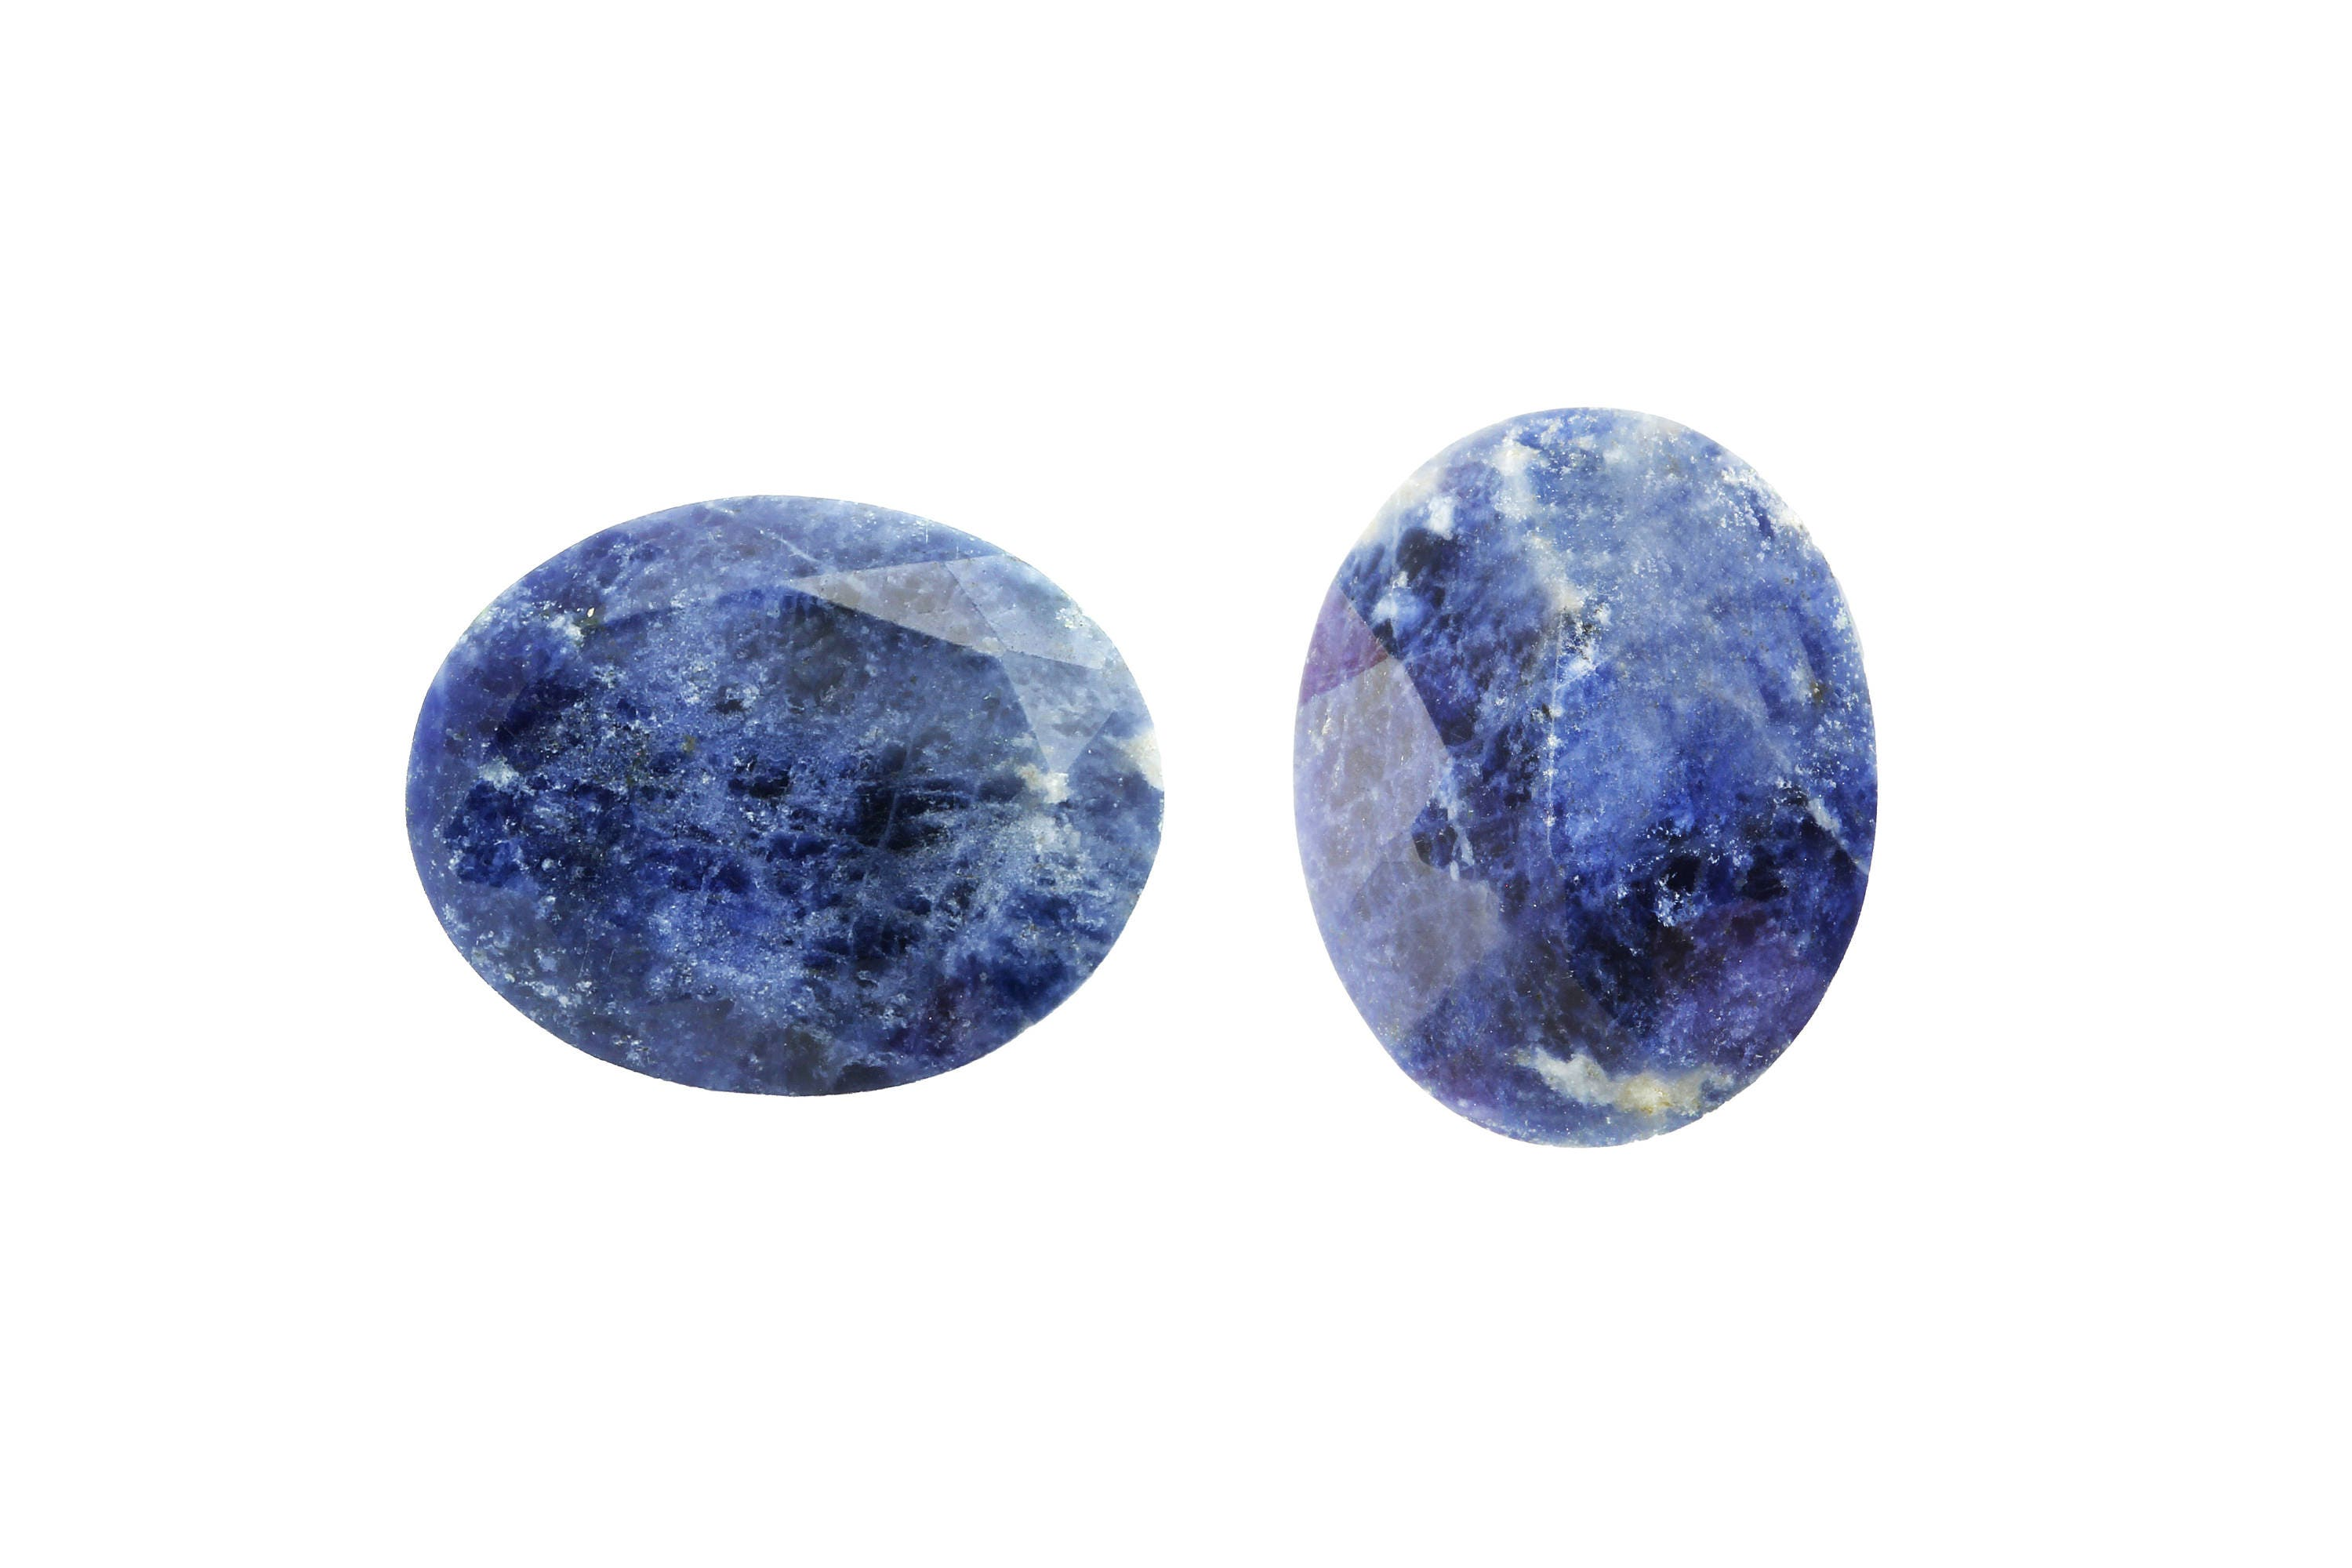 detail families and purple gemstones main navy index blue sapphire species violet gemstone colorchange to from green madagascar